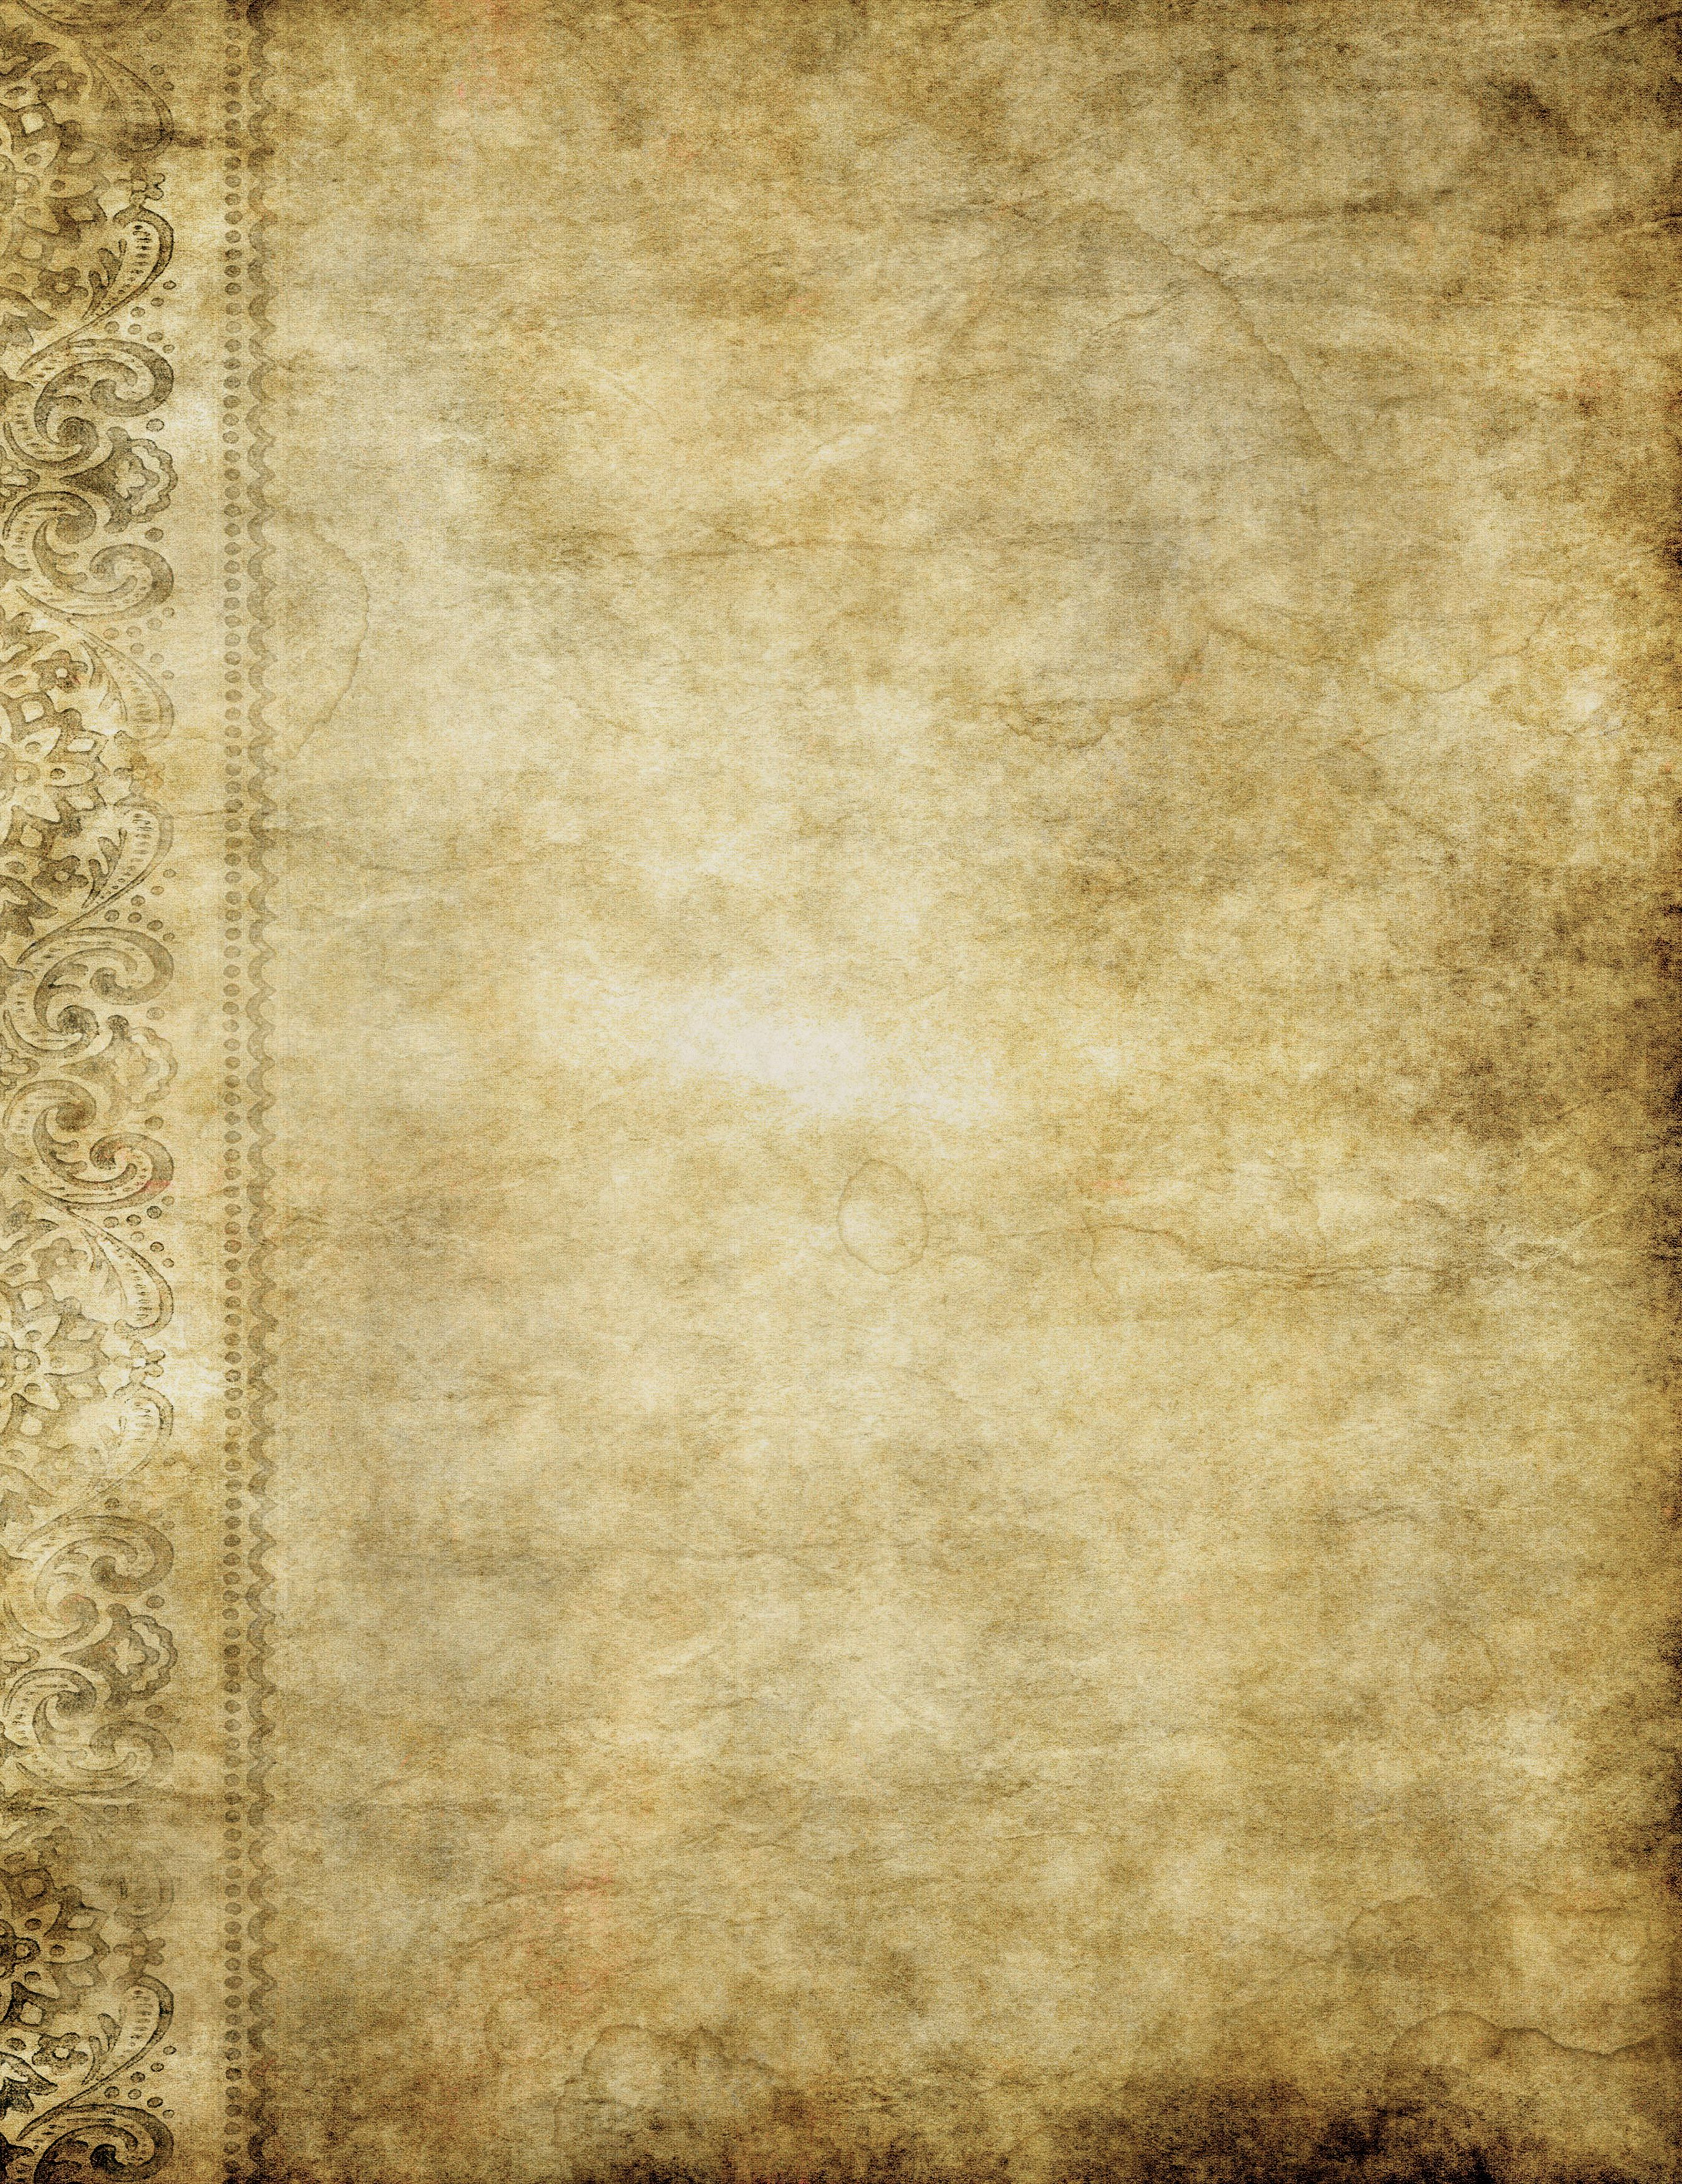 best photos of old paper background for word old newspaper paper